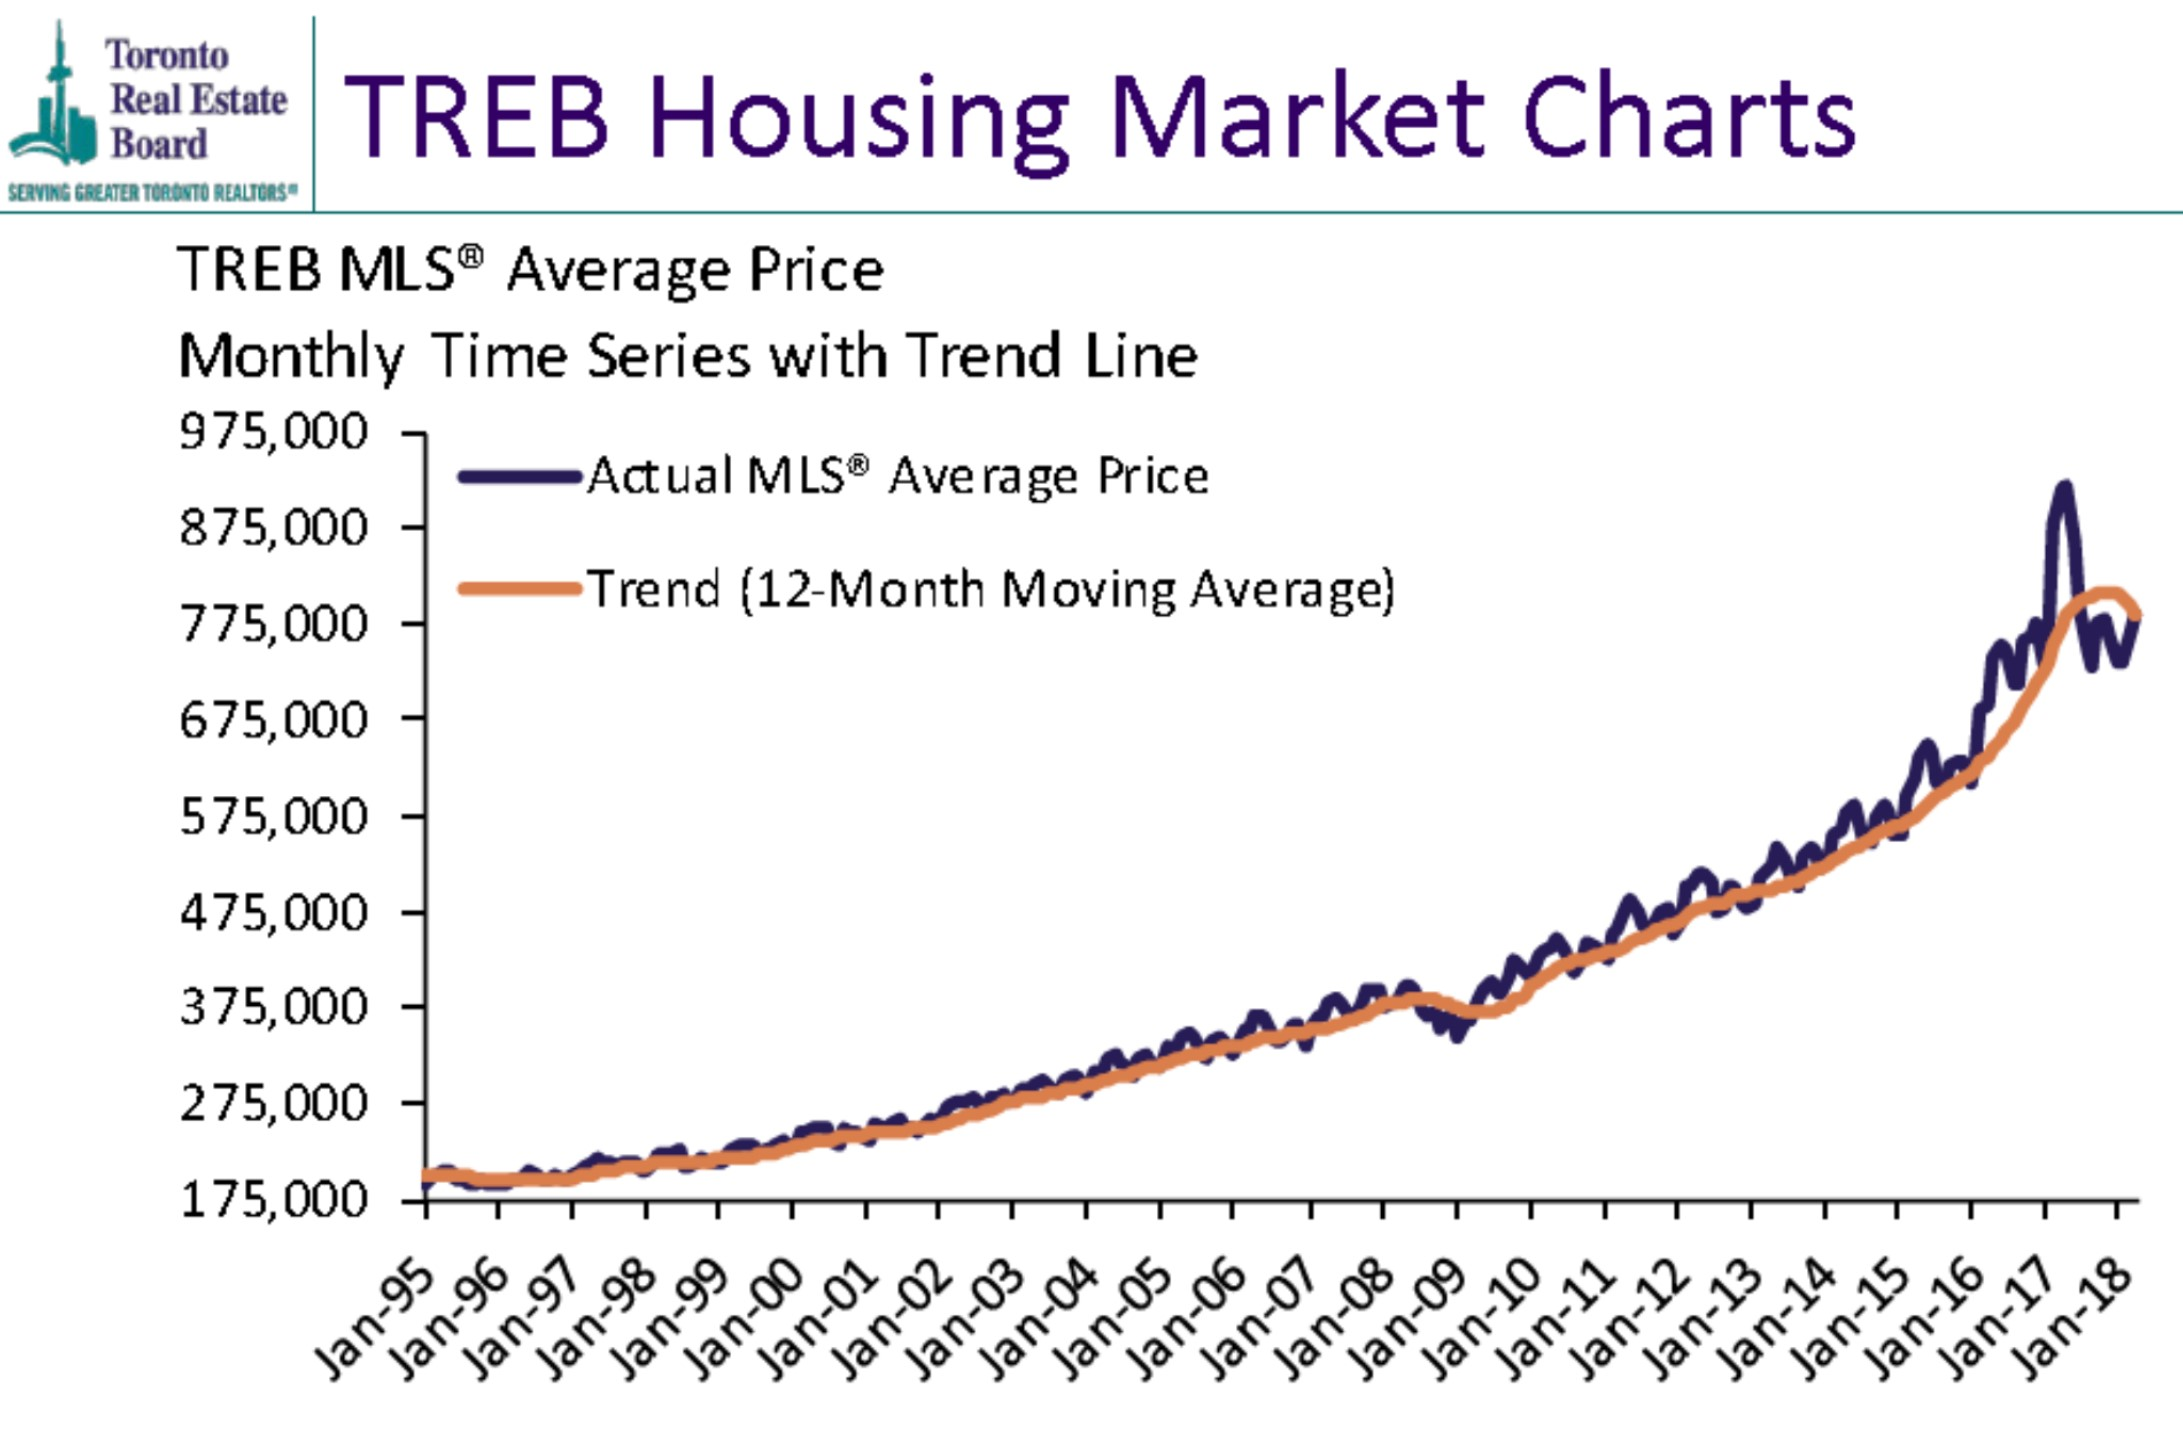 TREB PRICES MARCH 2018.jpg